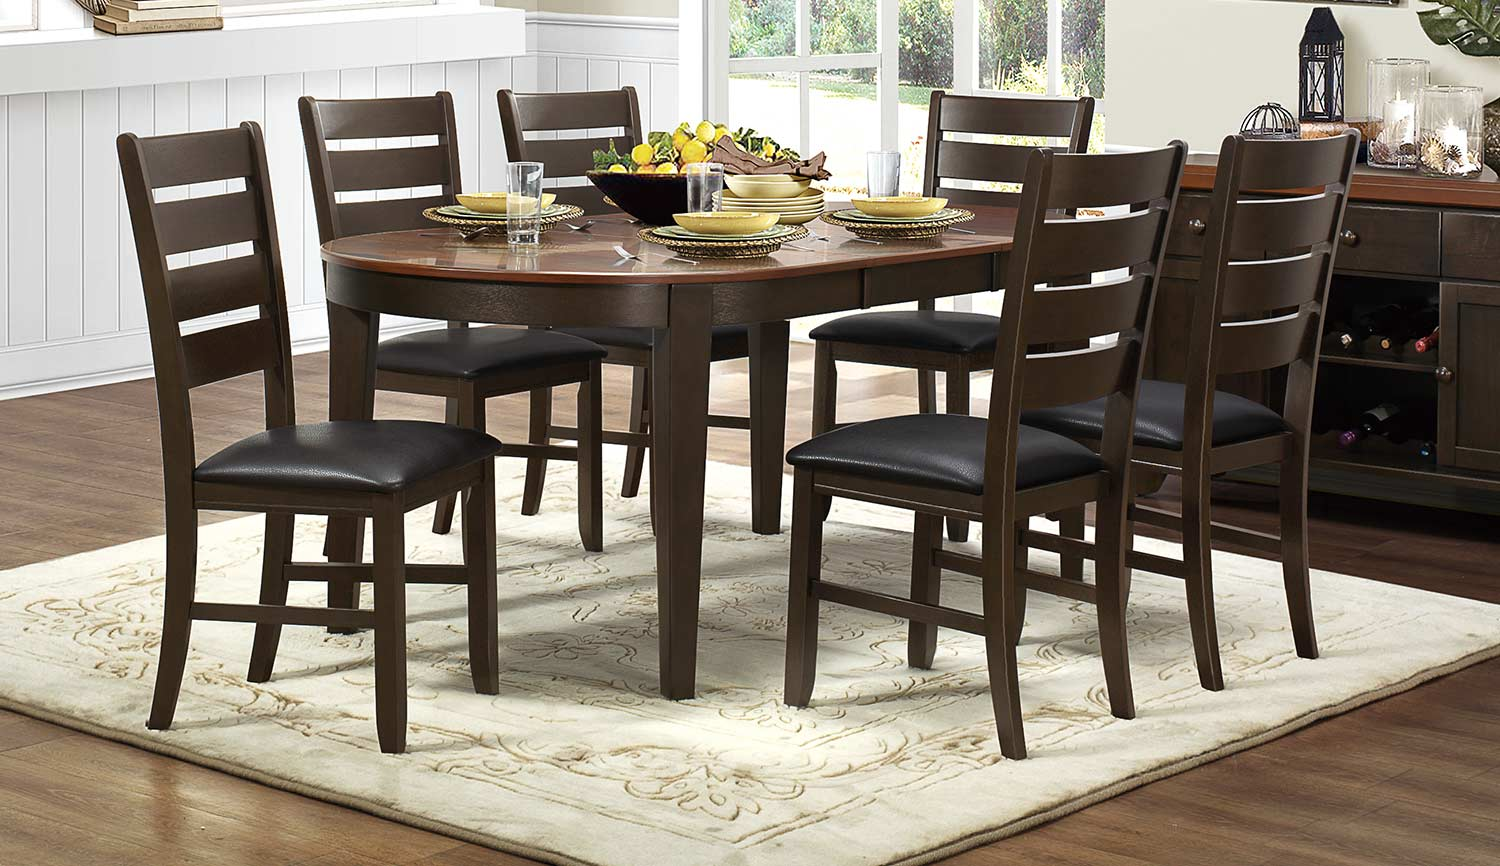 Homelegance Grunwald Dining Set - Dark Brown